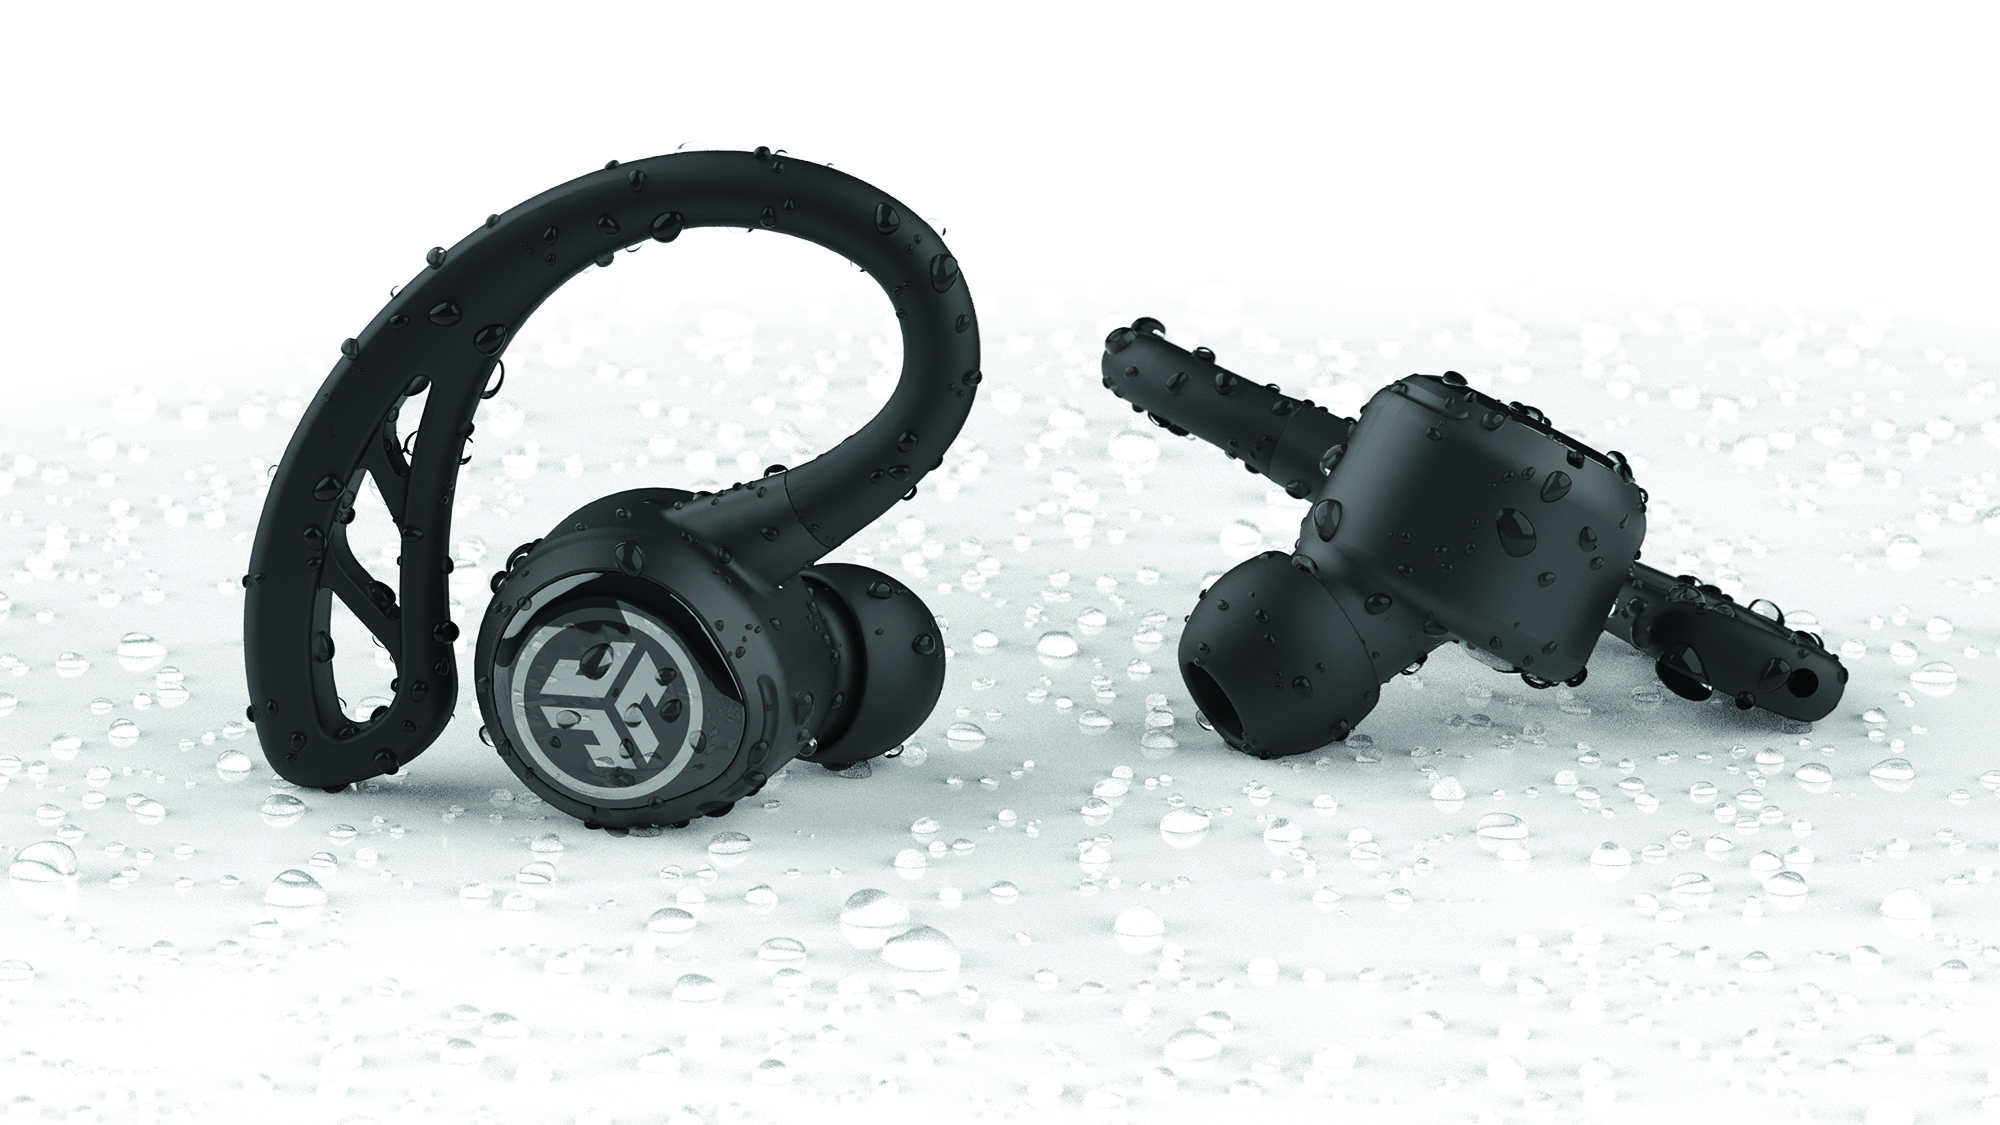 JLab's latest true wireless headphones can go 38 hours between charges